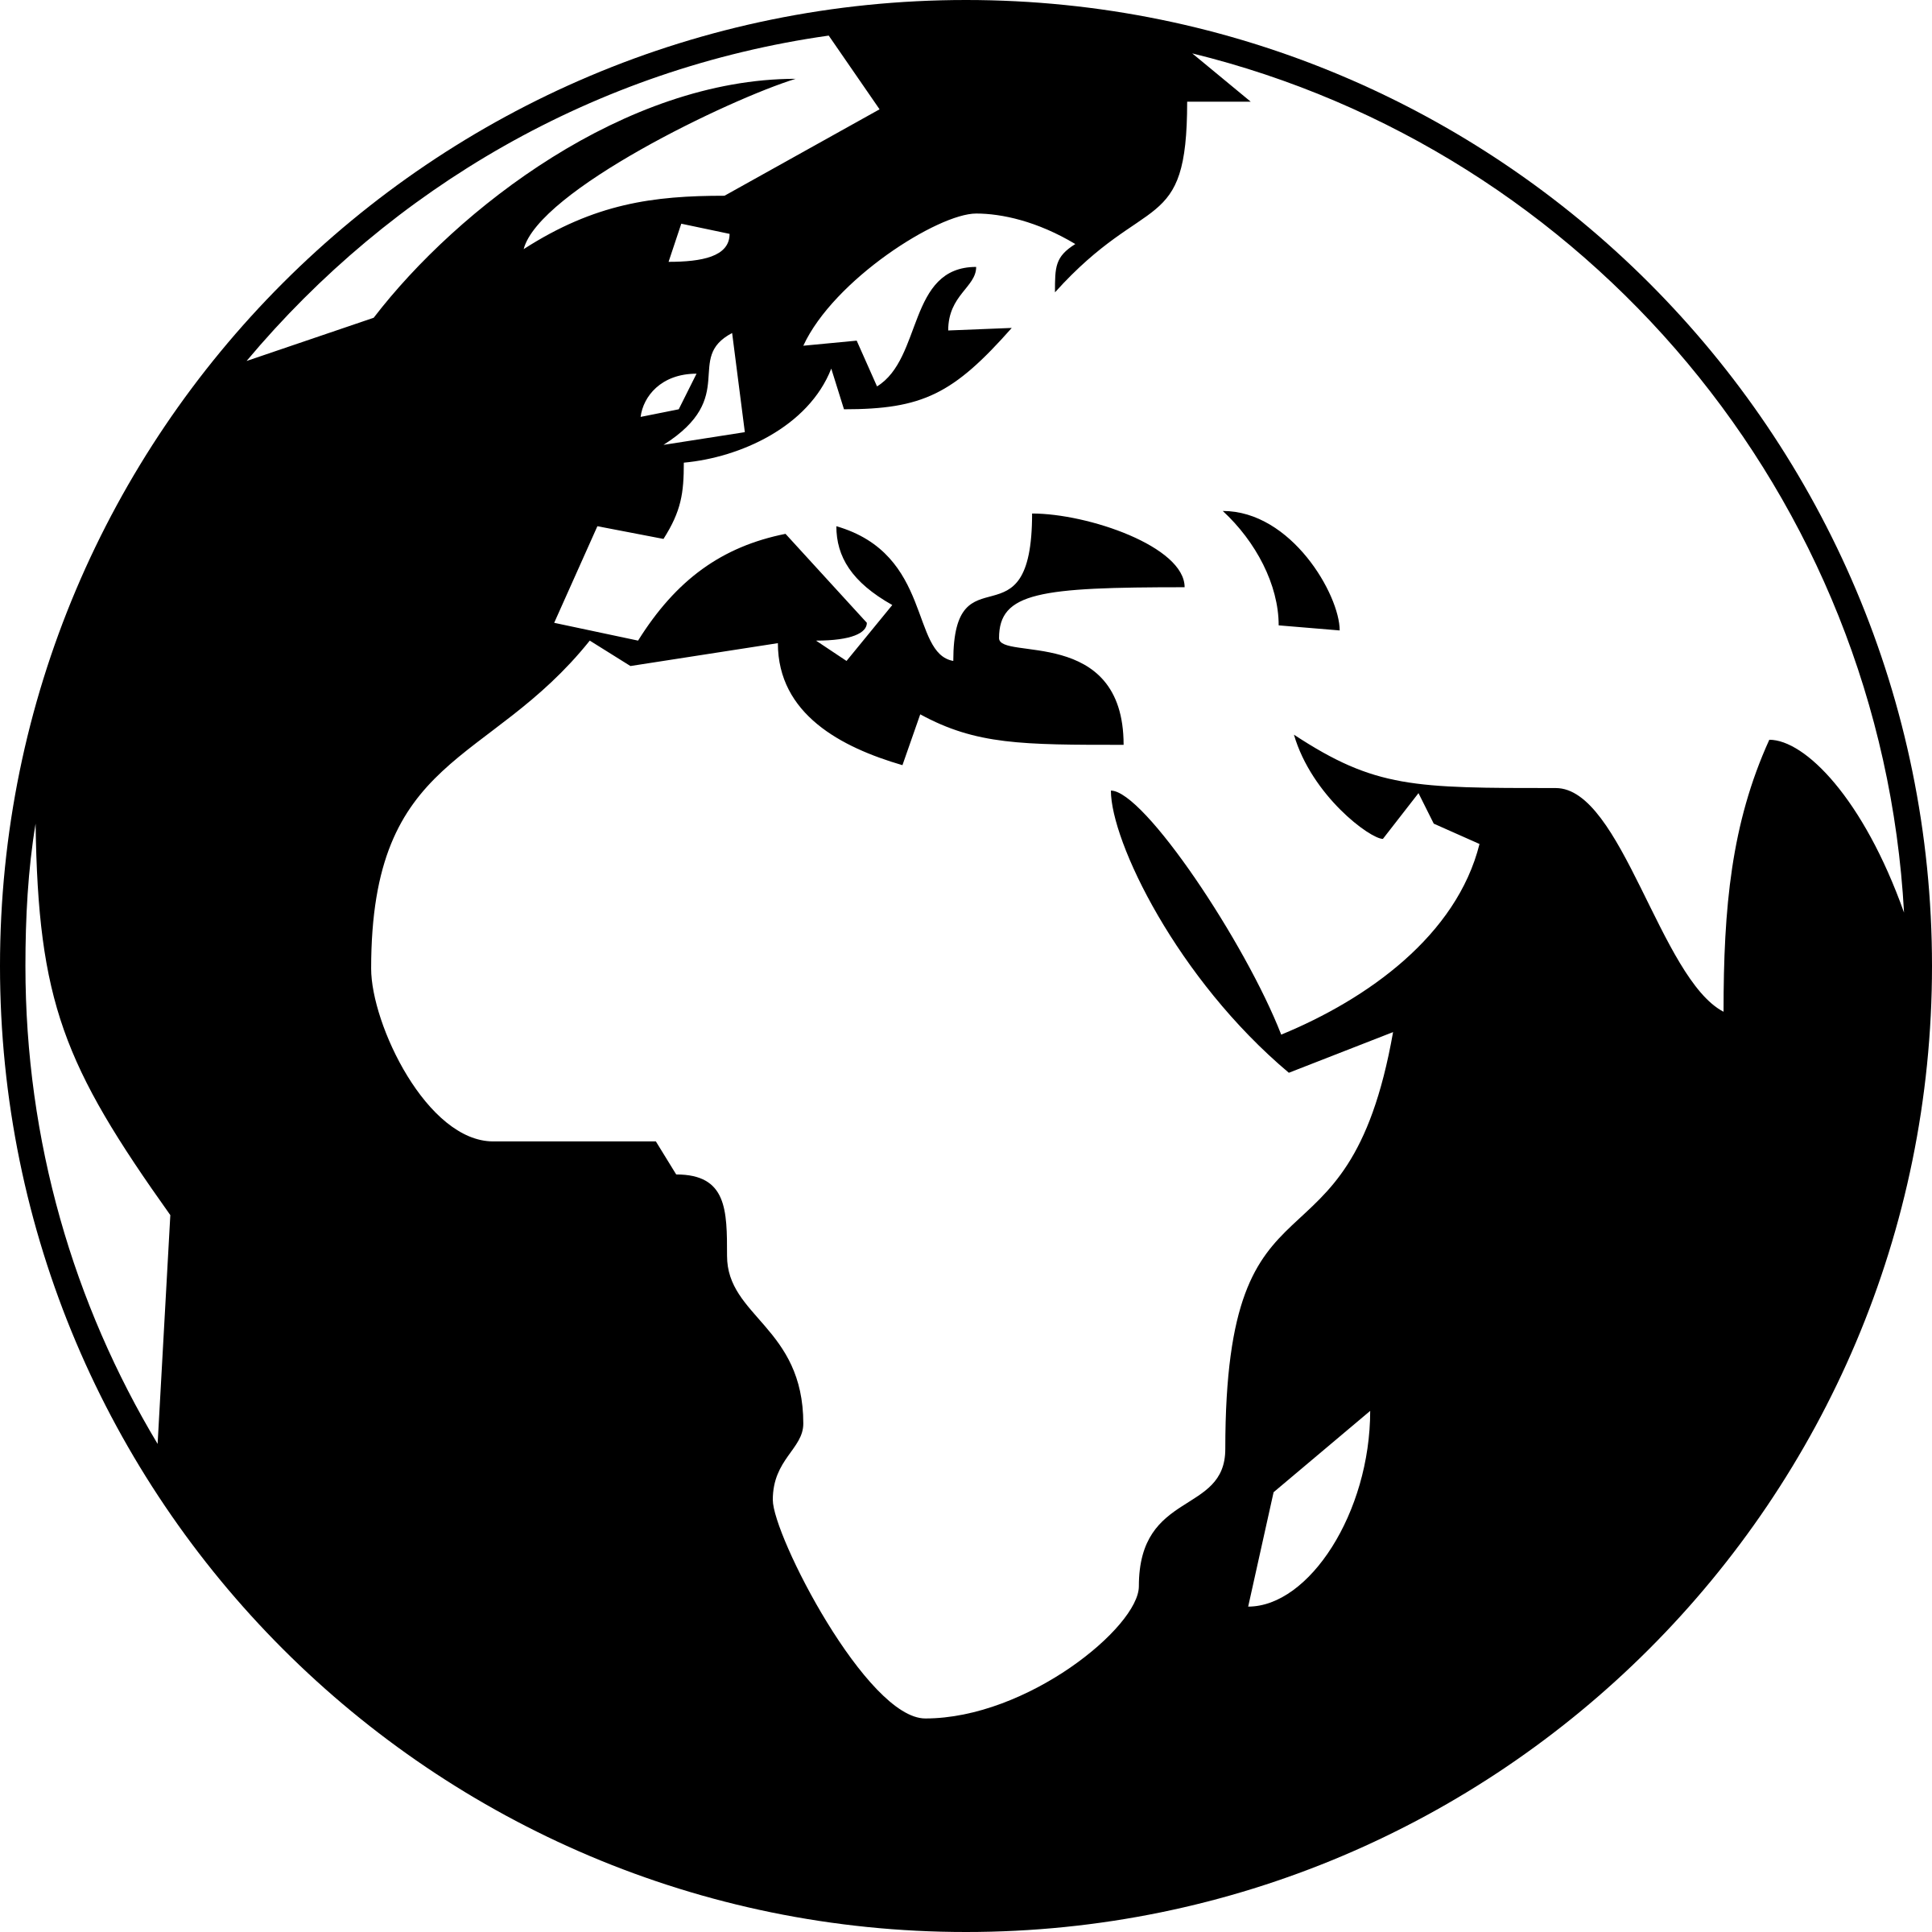 Simple globe showing Africa, Asia and Europe in black and white by brylie